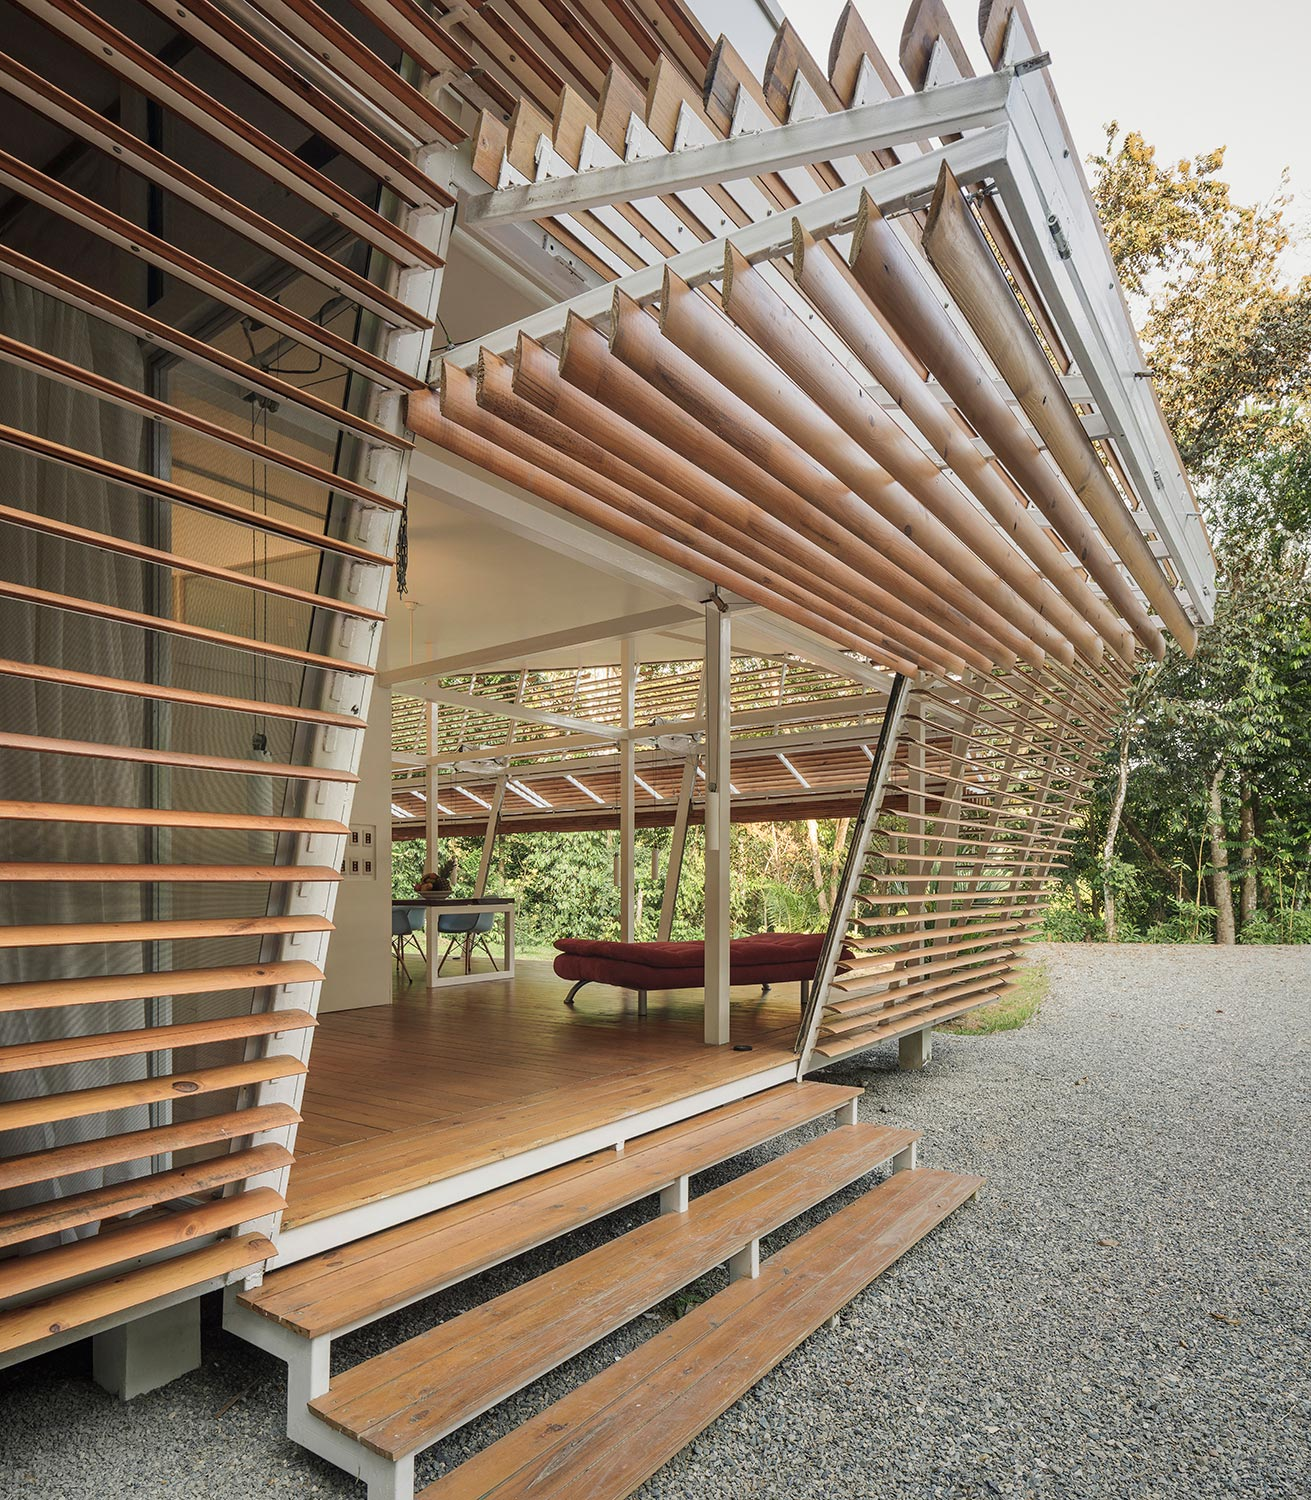 The outer timber-slat walls are set at an incline to reduce the direct impact of sunlight and rainwater. Fernando Alda